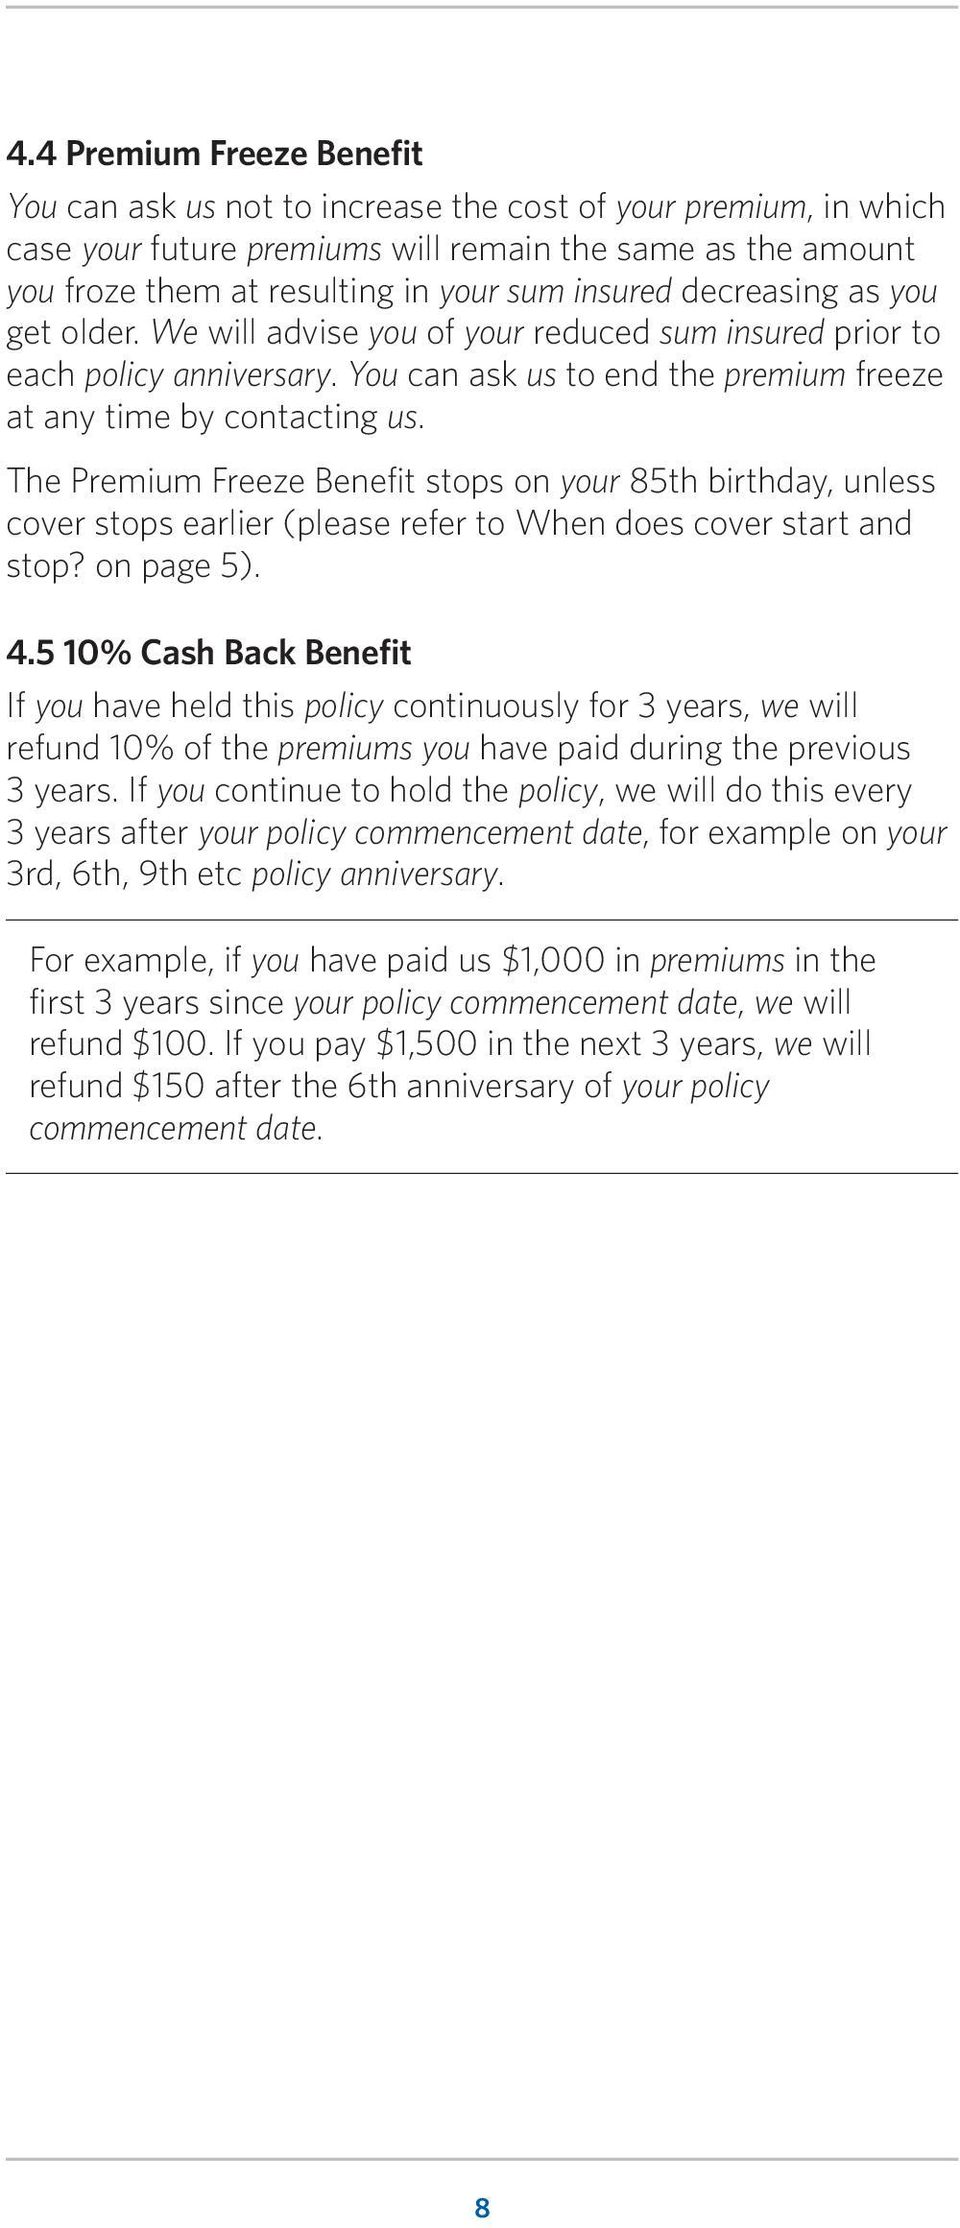 The Premium Freeze Benefit stops on your 85th birthday, unless cover stops earlier (please refer to When does cover start and stop? on page 5). 4.